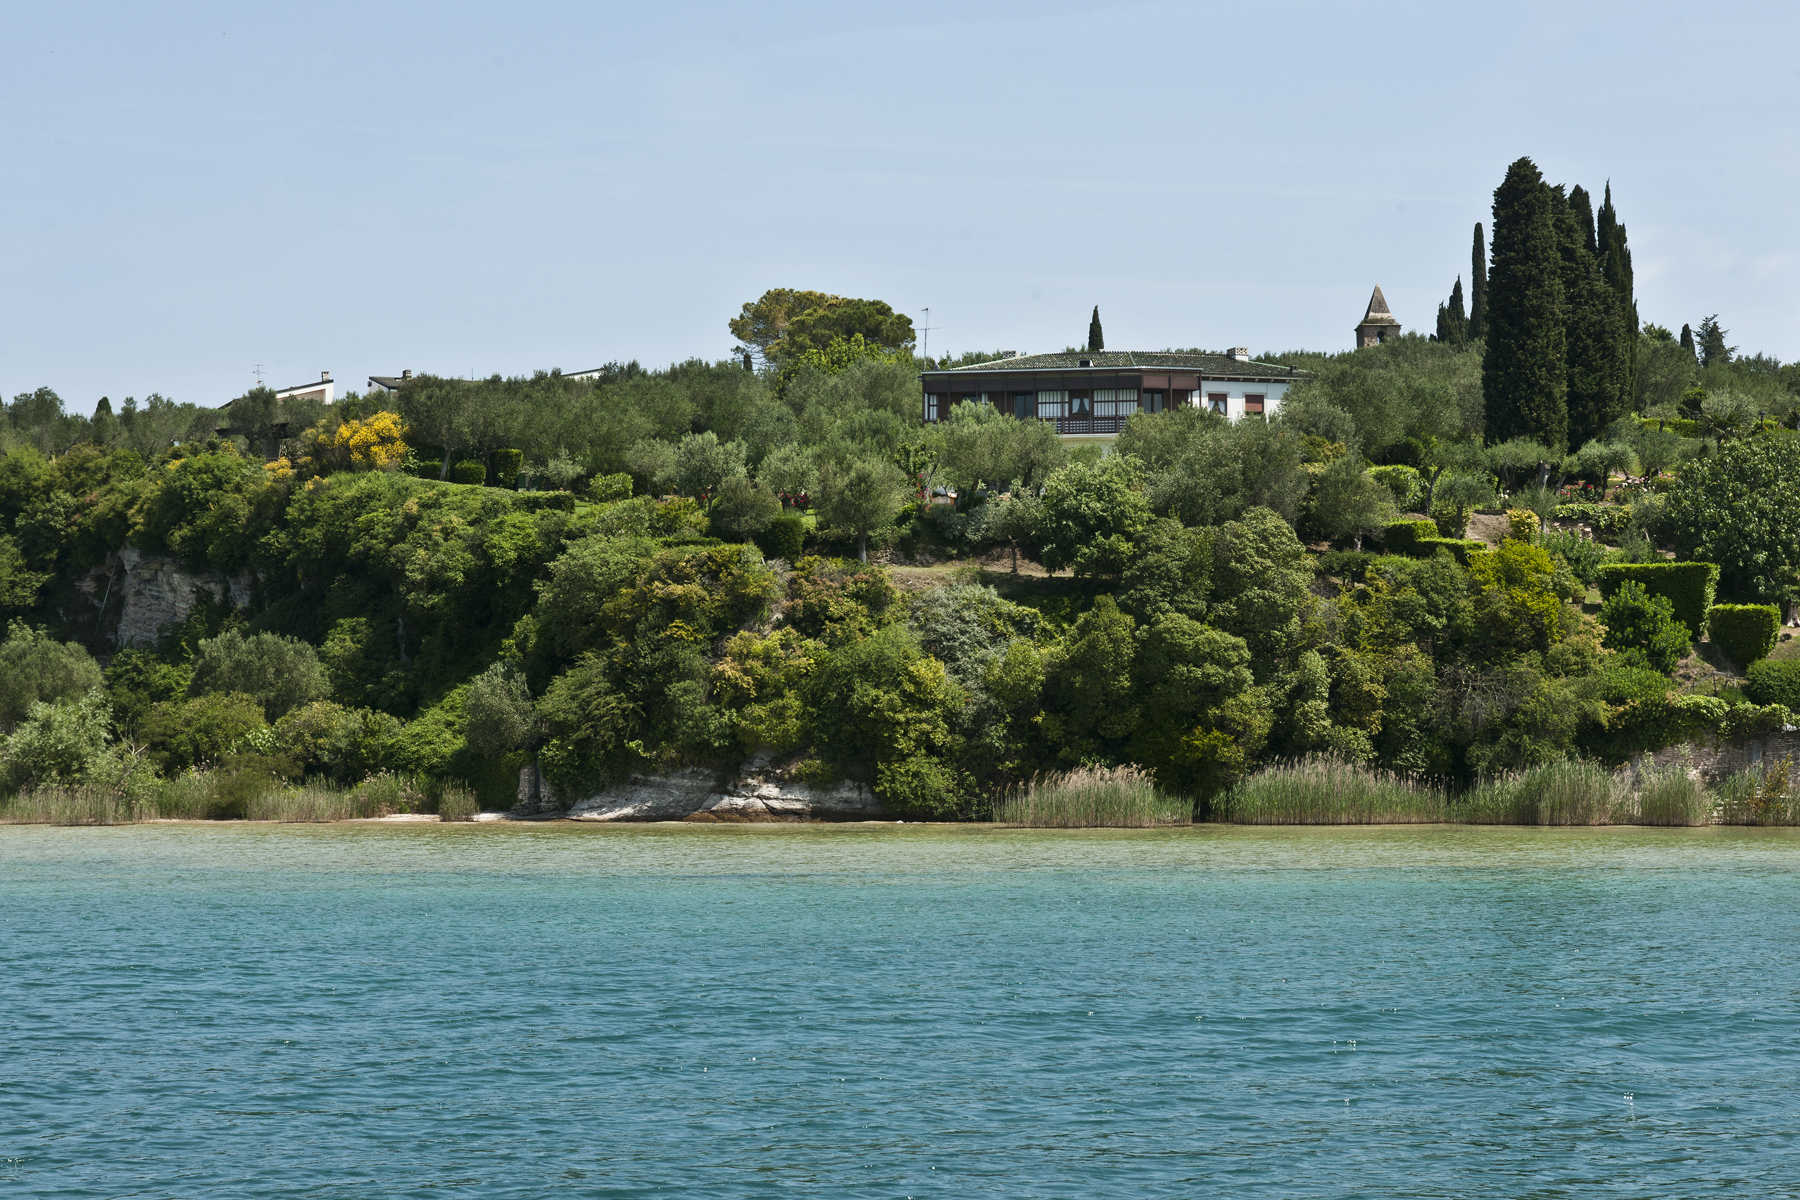 Single Family Home for Sale at Exclusive Villa pieds dans l'eau Via San Pietro in Mavino Sirmione, Brescia 25019 Italy